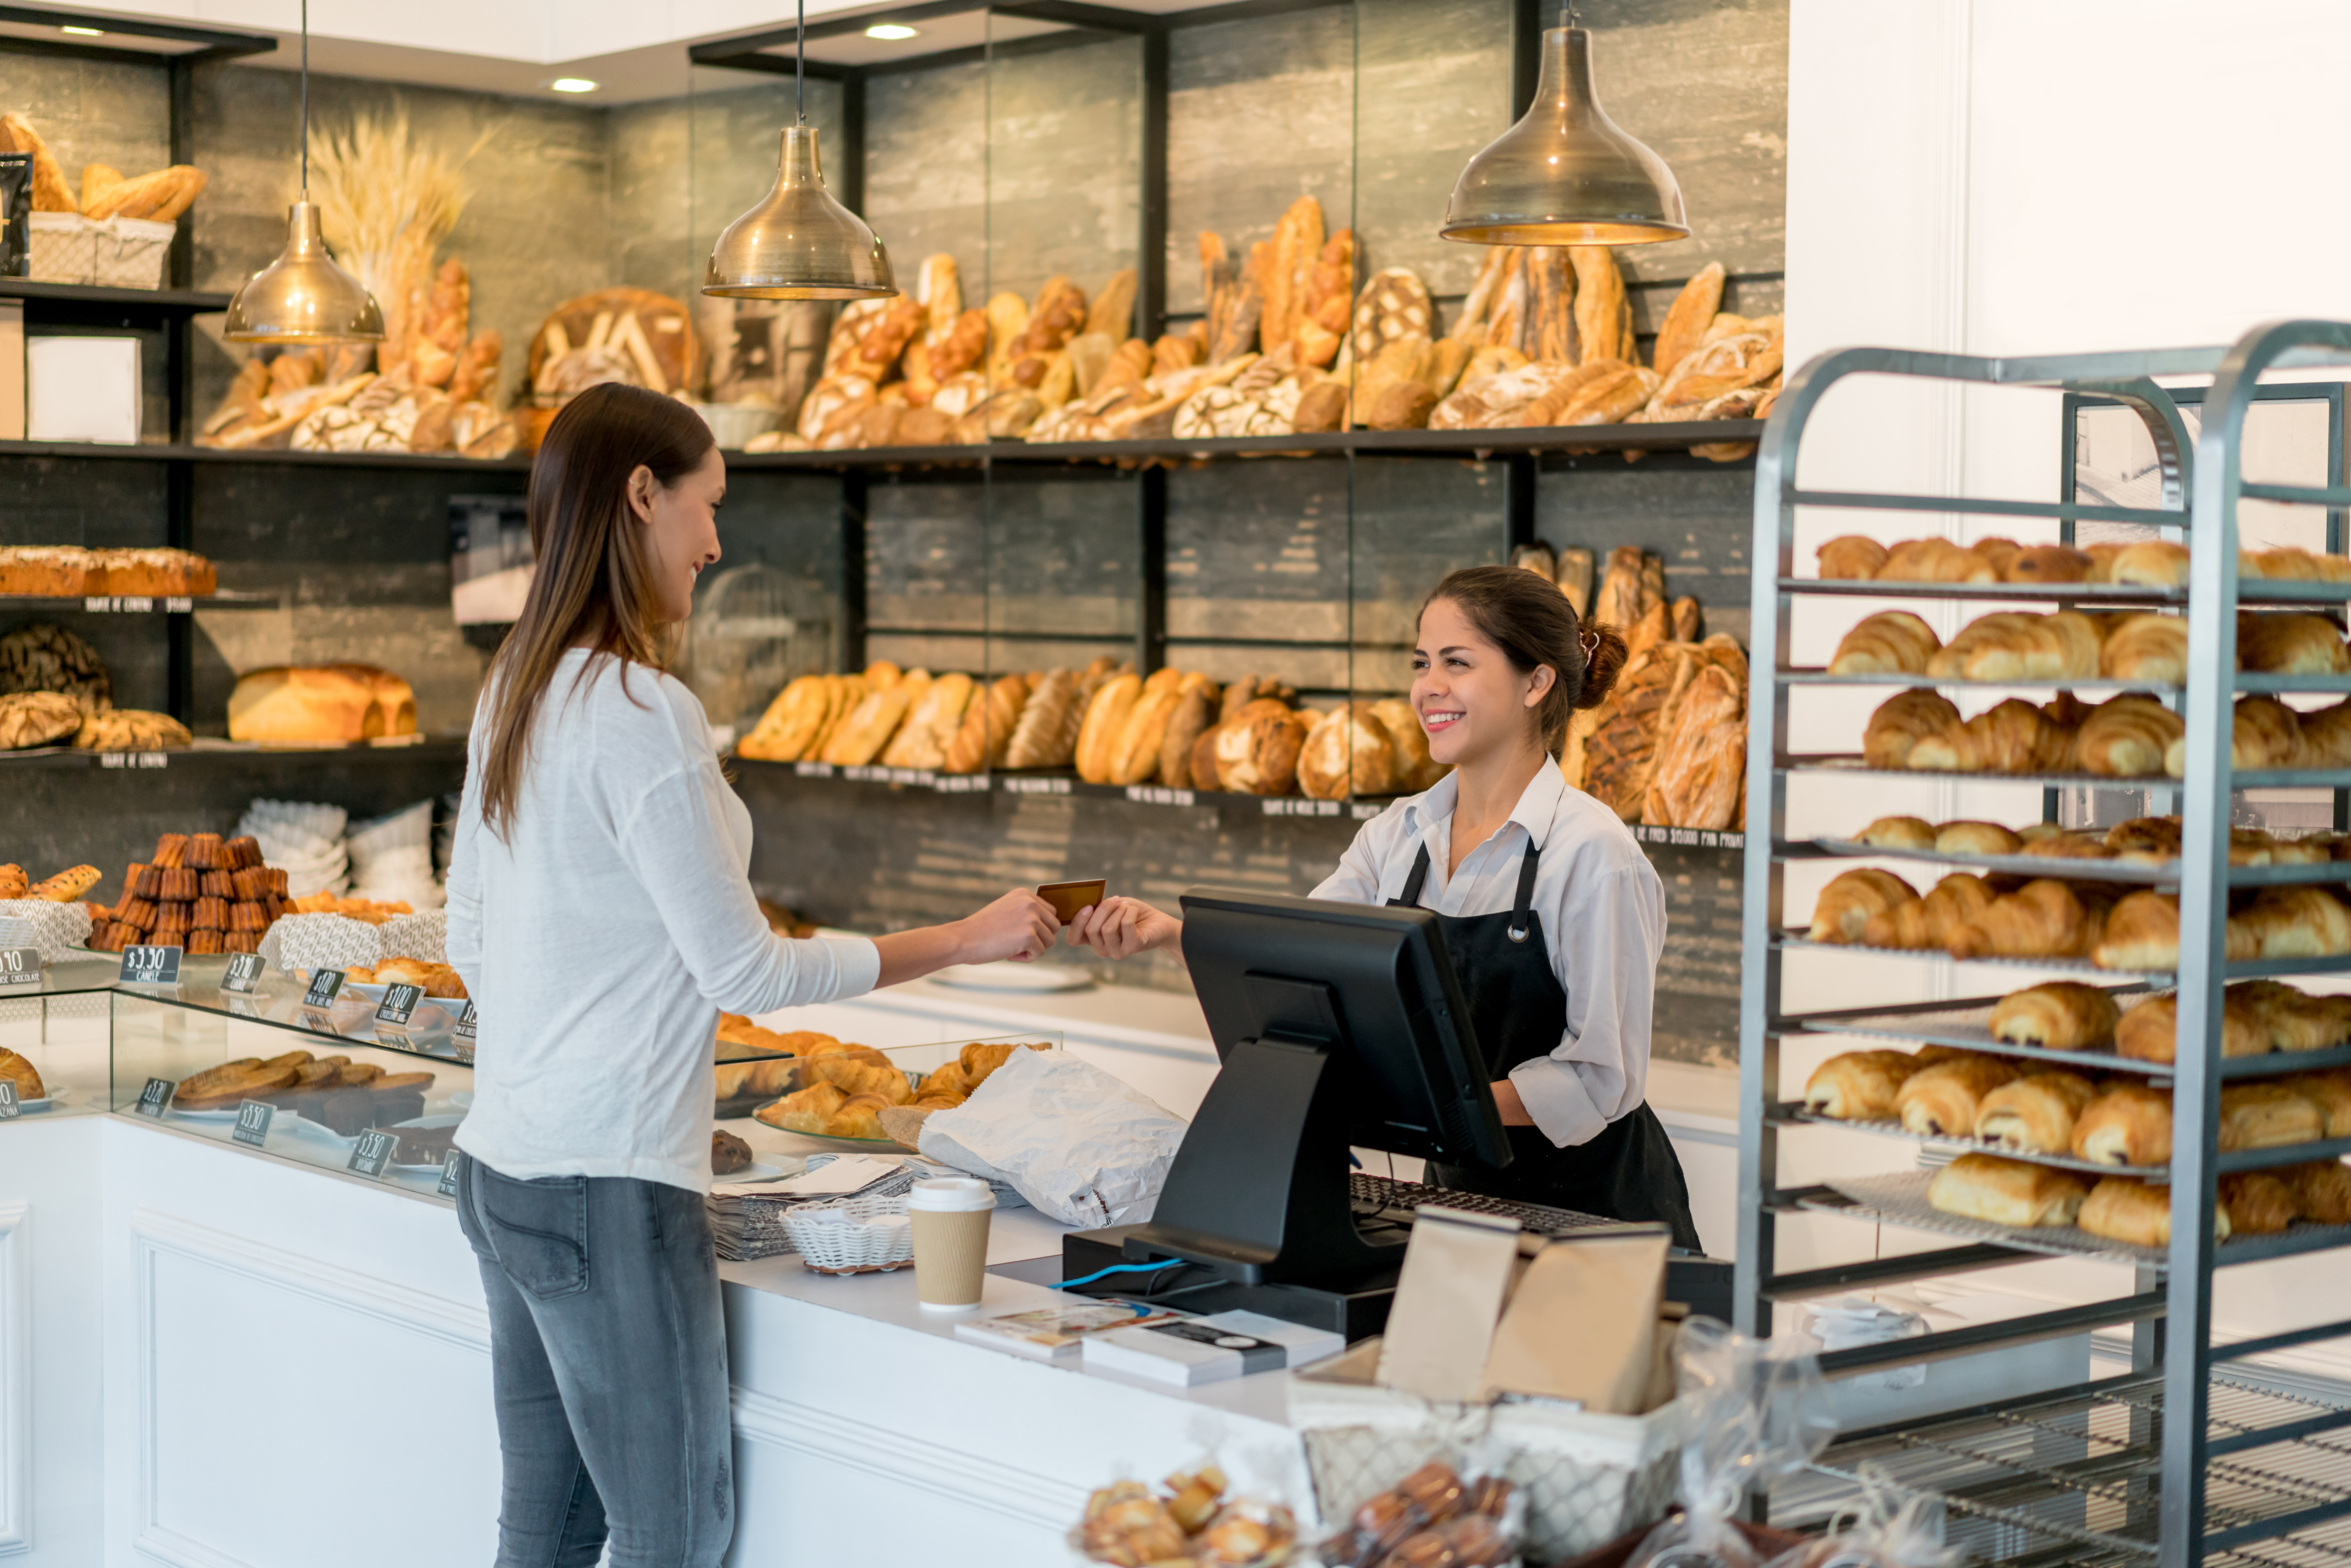 How Much Does an Owner of a Small Bakery Make a Month